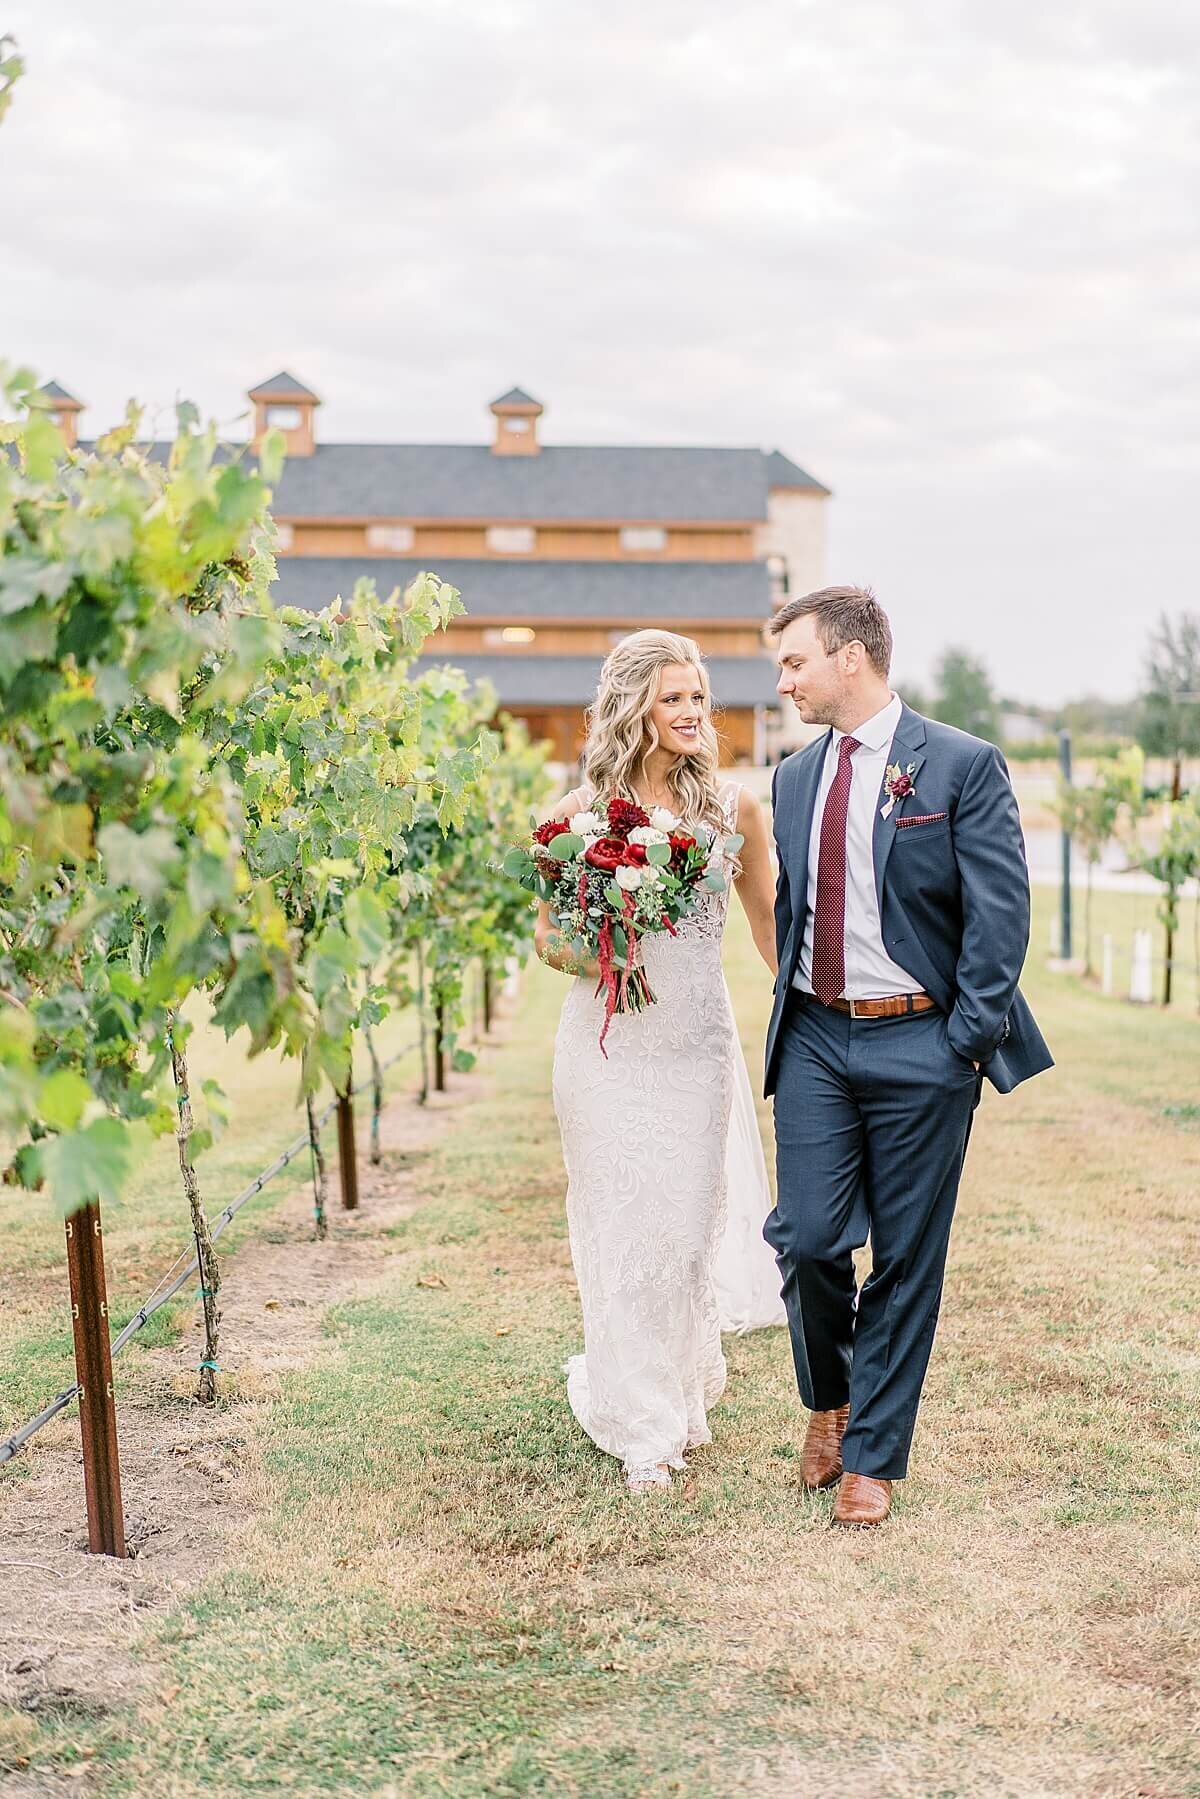 Weinberg-at-Wixon-Valley-Wedding-College-Station-Photographer-Alicia-Yarrish-Photography_0136